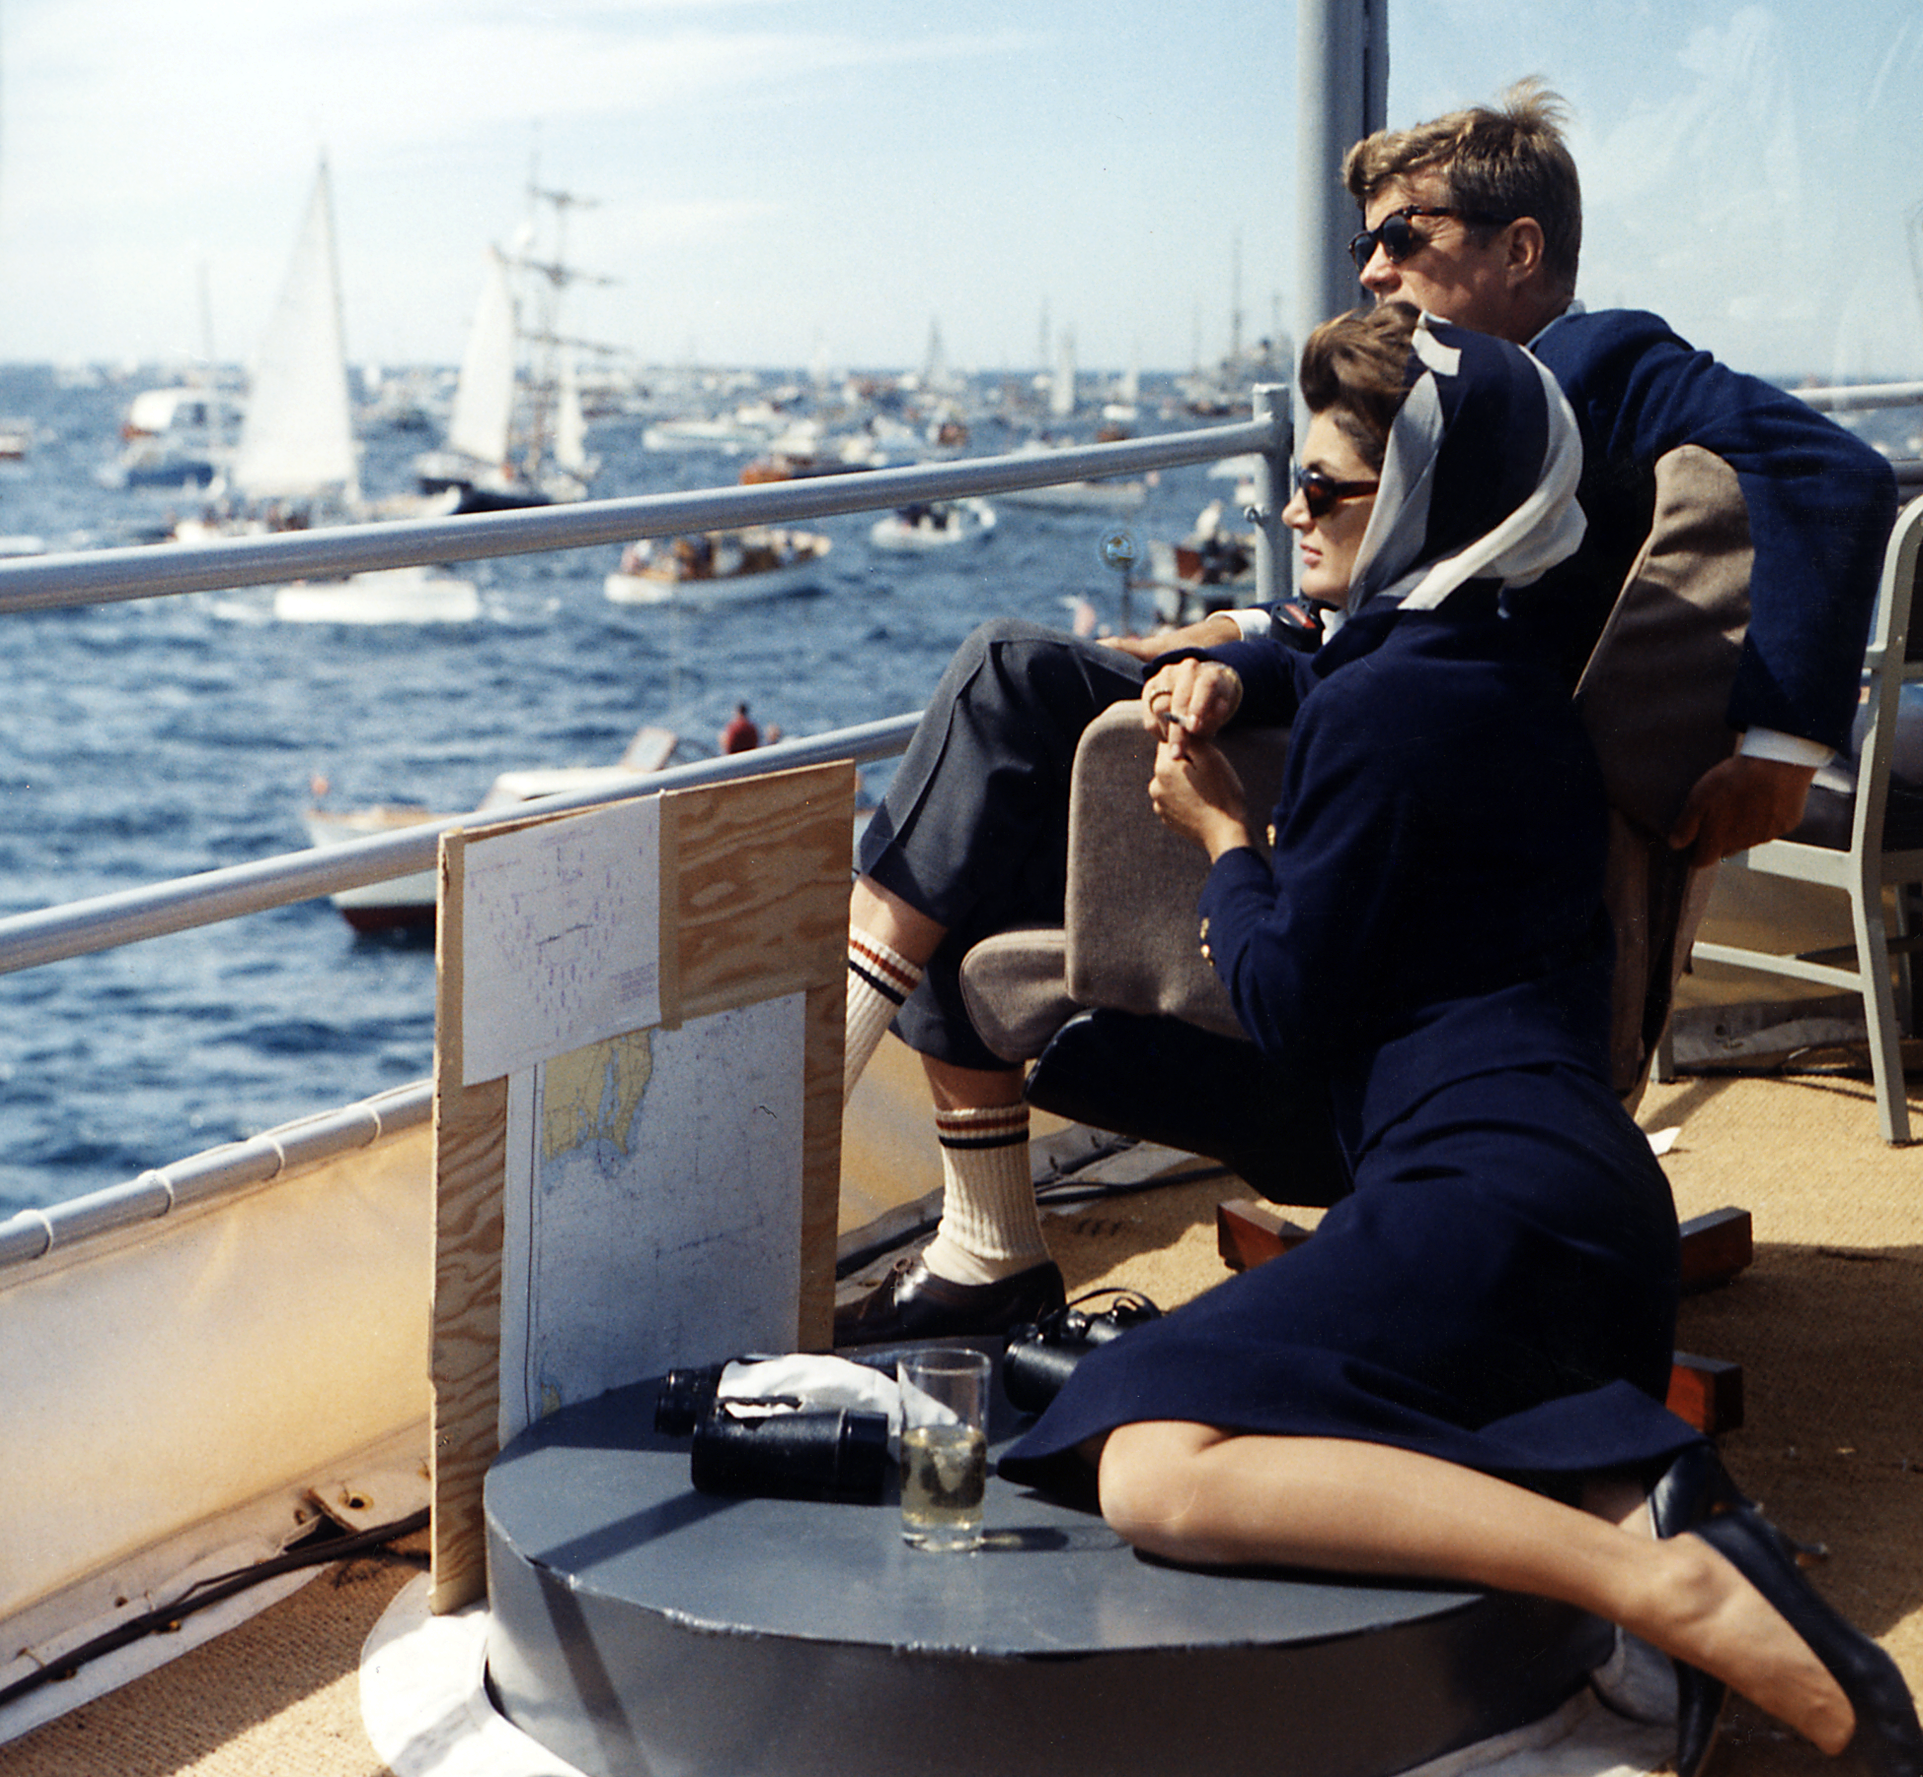 President Kennedy and wife watching Americas Cup d19ede6867fa3